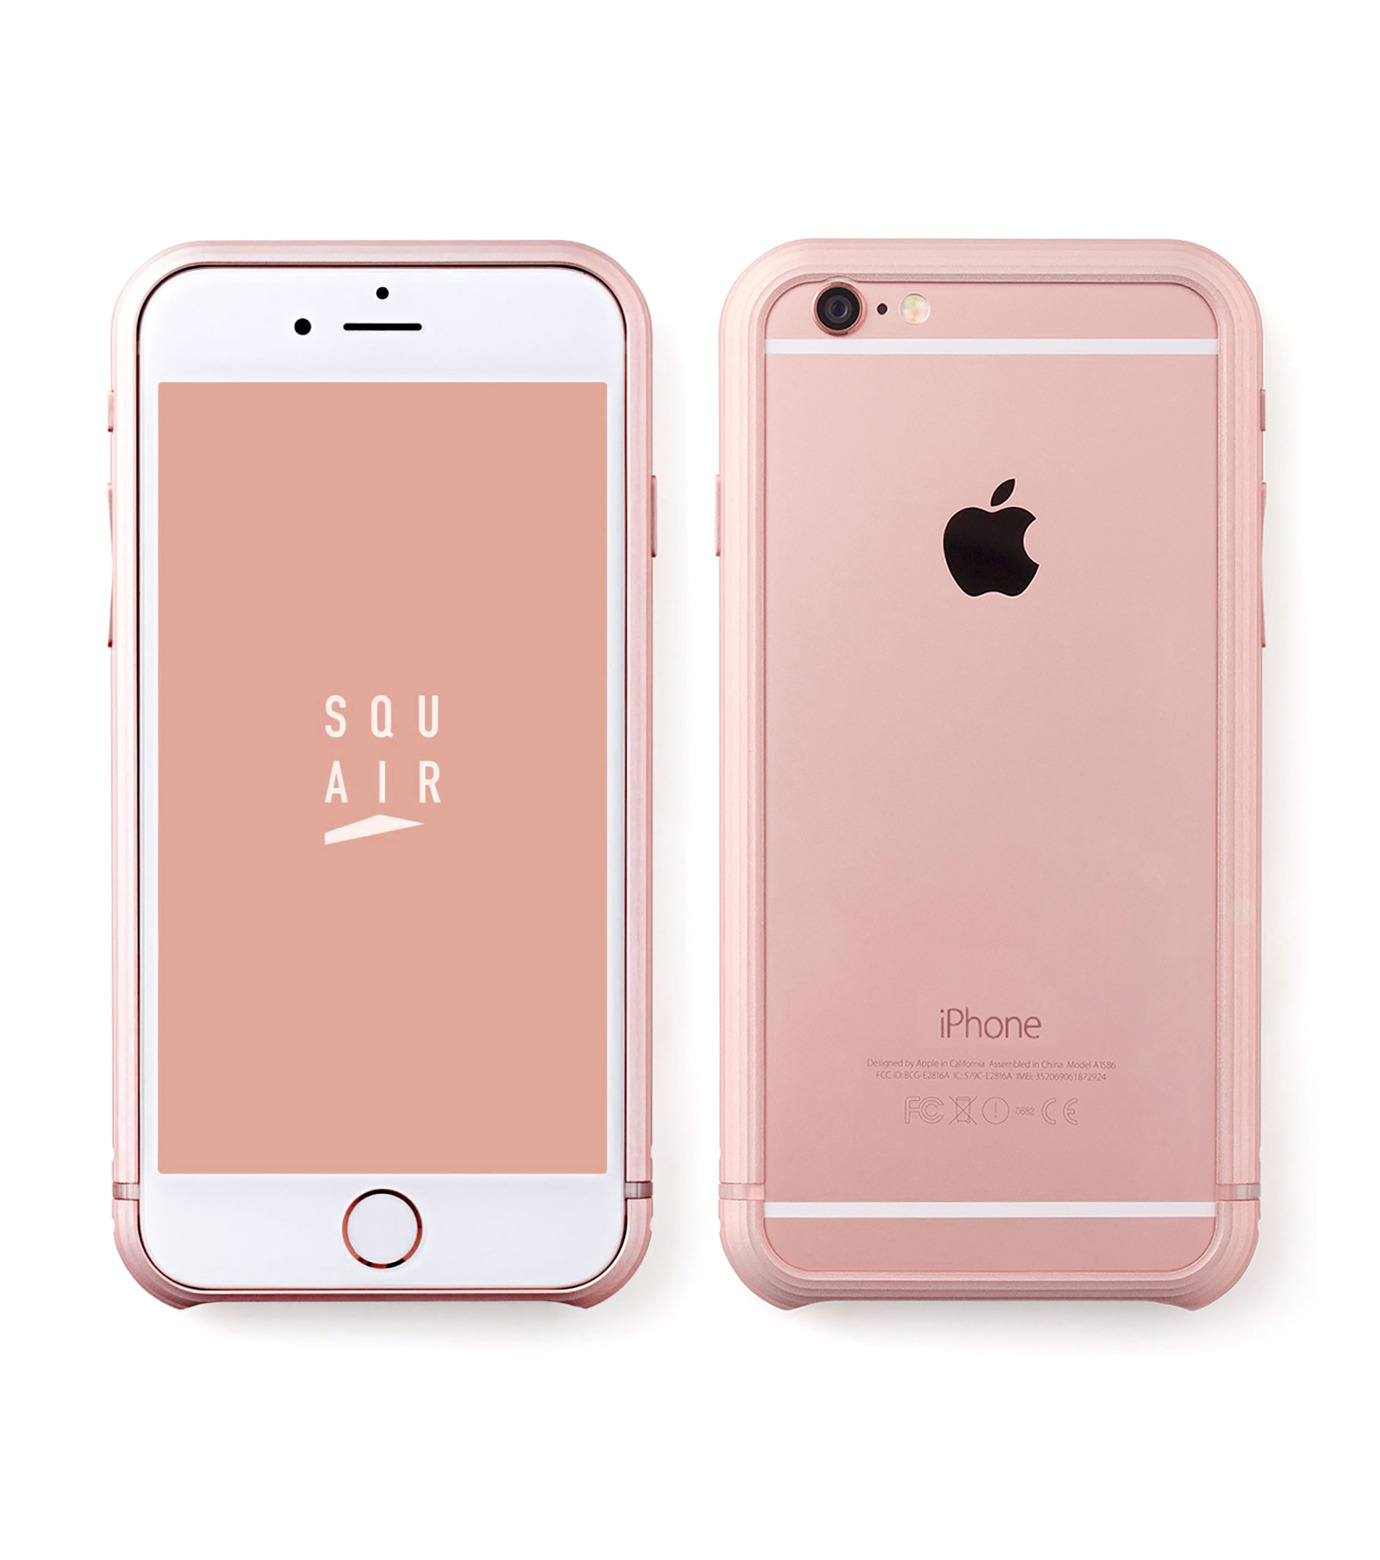 SQUAIR(スクエア)のThe Dimple for iPhone6s plus-GOLD(ケースiphone6plus/6splus/case iphone6plus/6splus)-SQDMP630-RGD-2 拡大詳細画像1